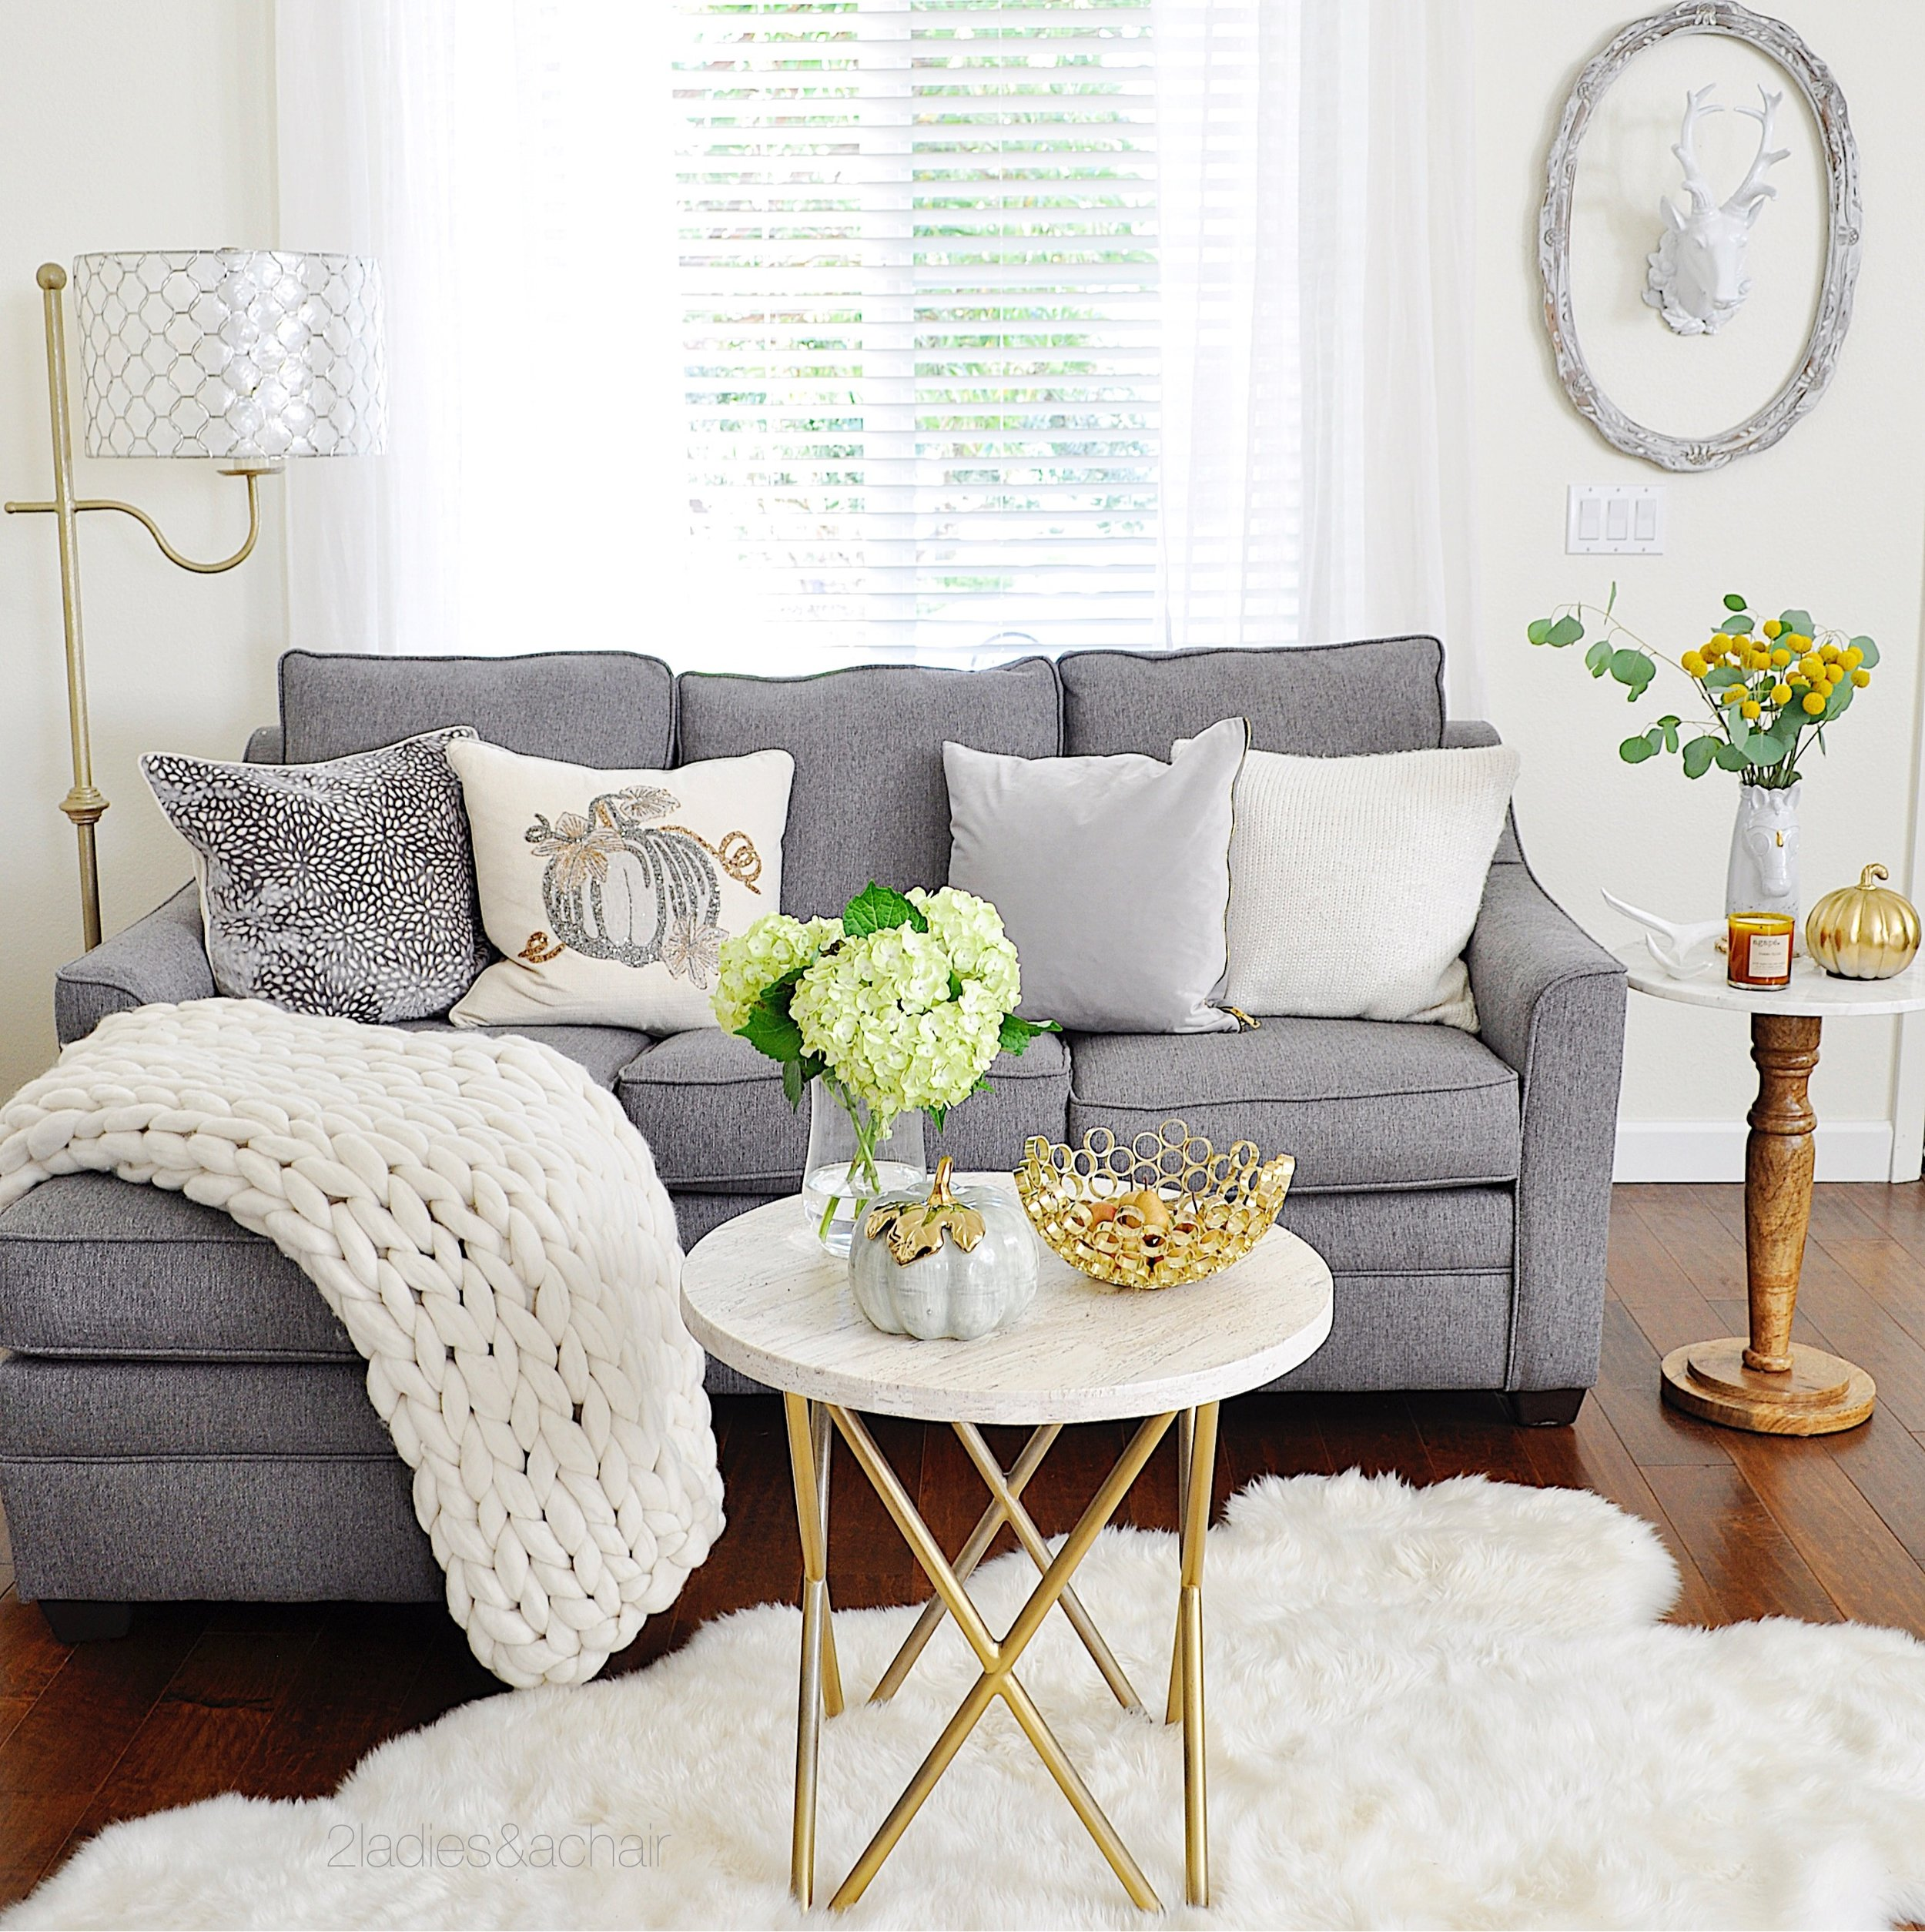 neutral living room decor ideas for fall IMG_8075.JPG